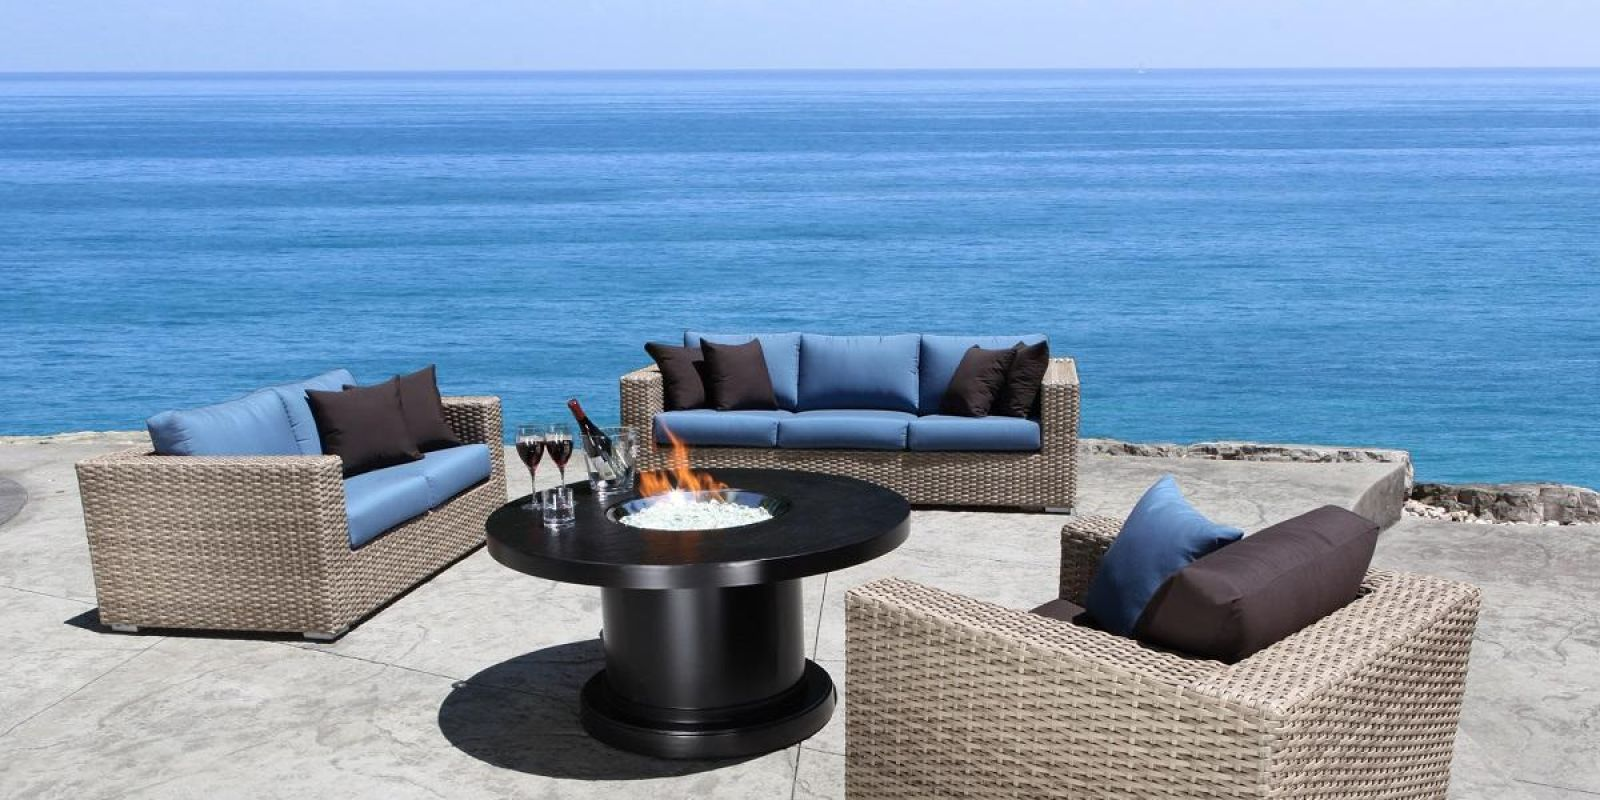 Outdoor Furniture | American Casual Living on Porch & Patio Casual Living id=26472